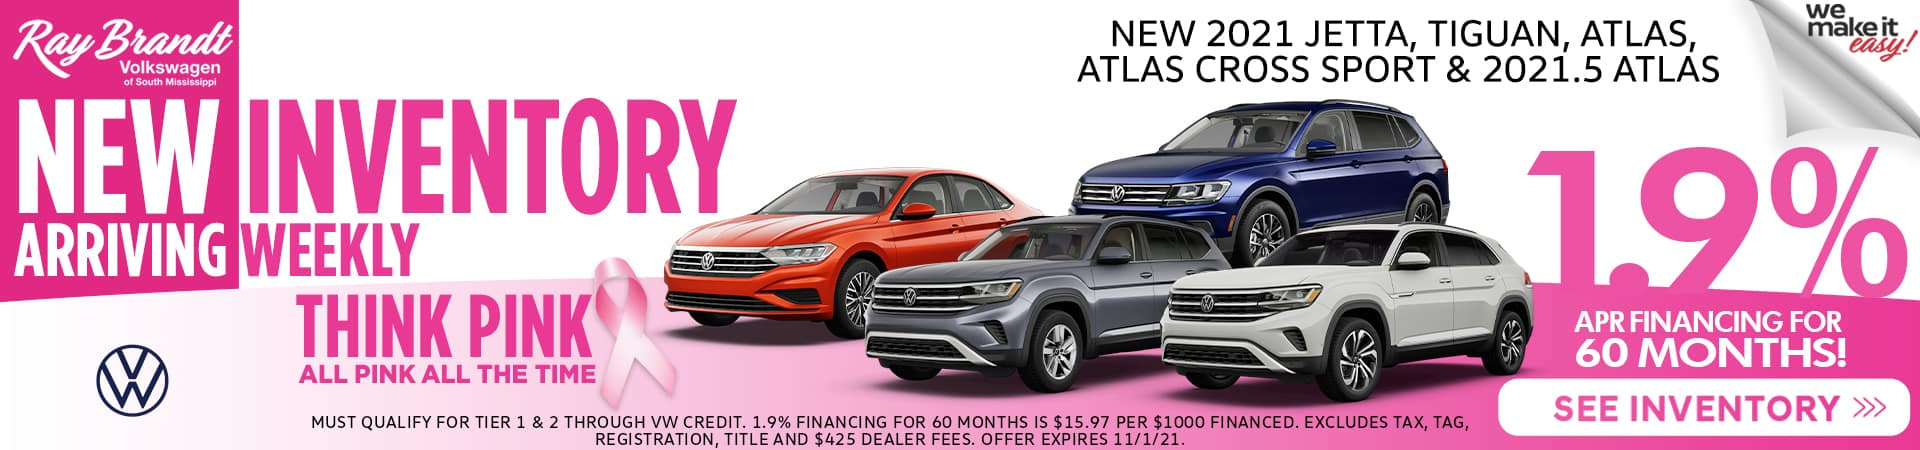 1.9% APR financing for 60 months at Volkswagen of South Mississippi